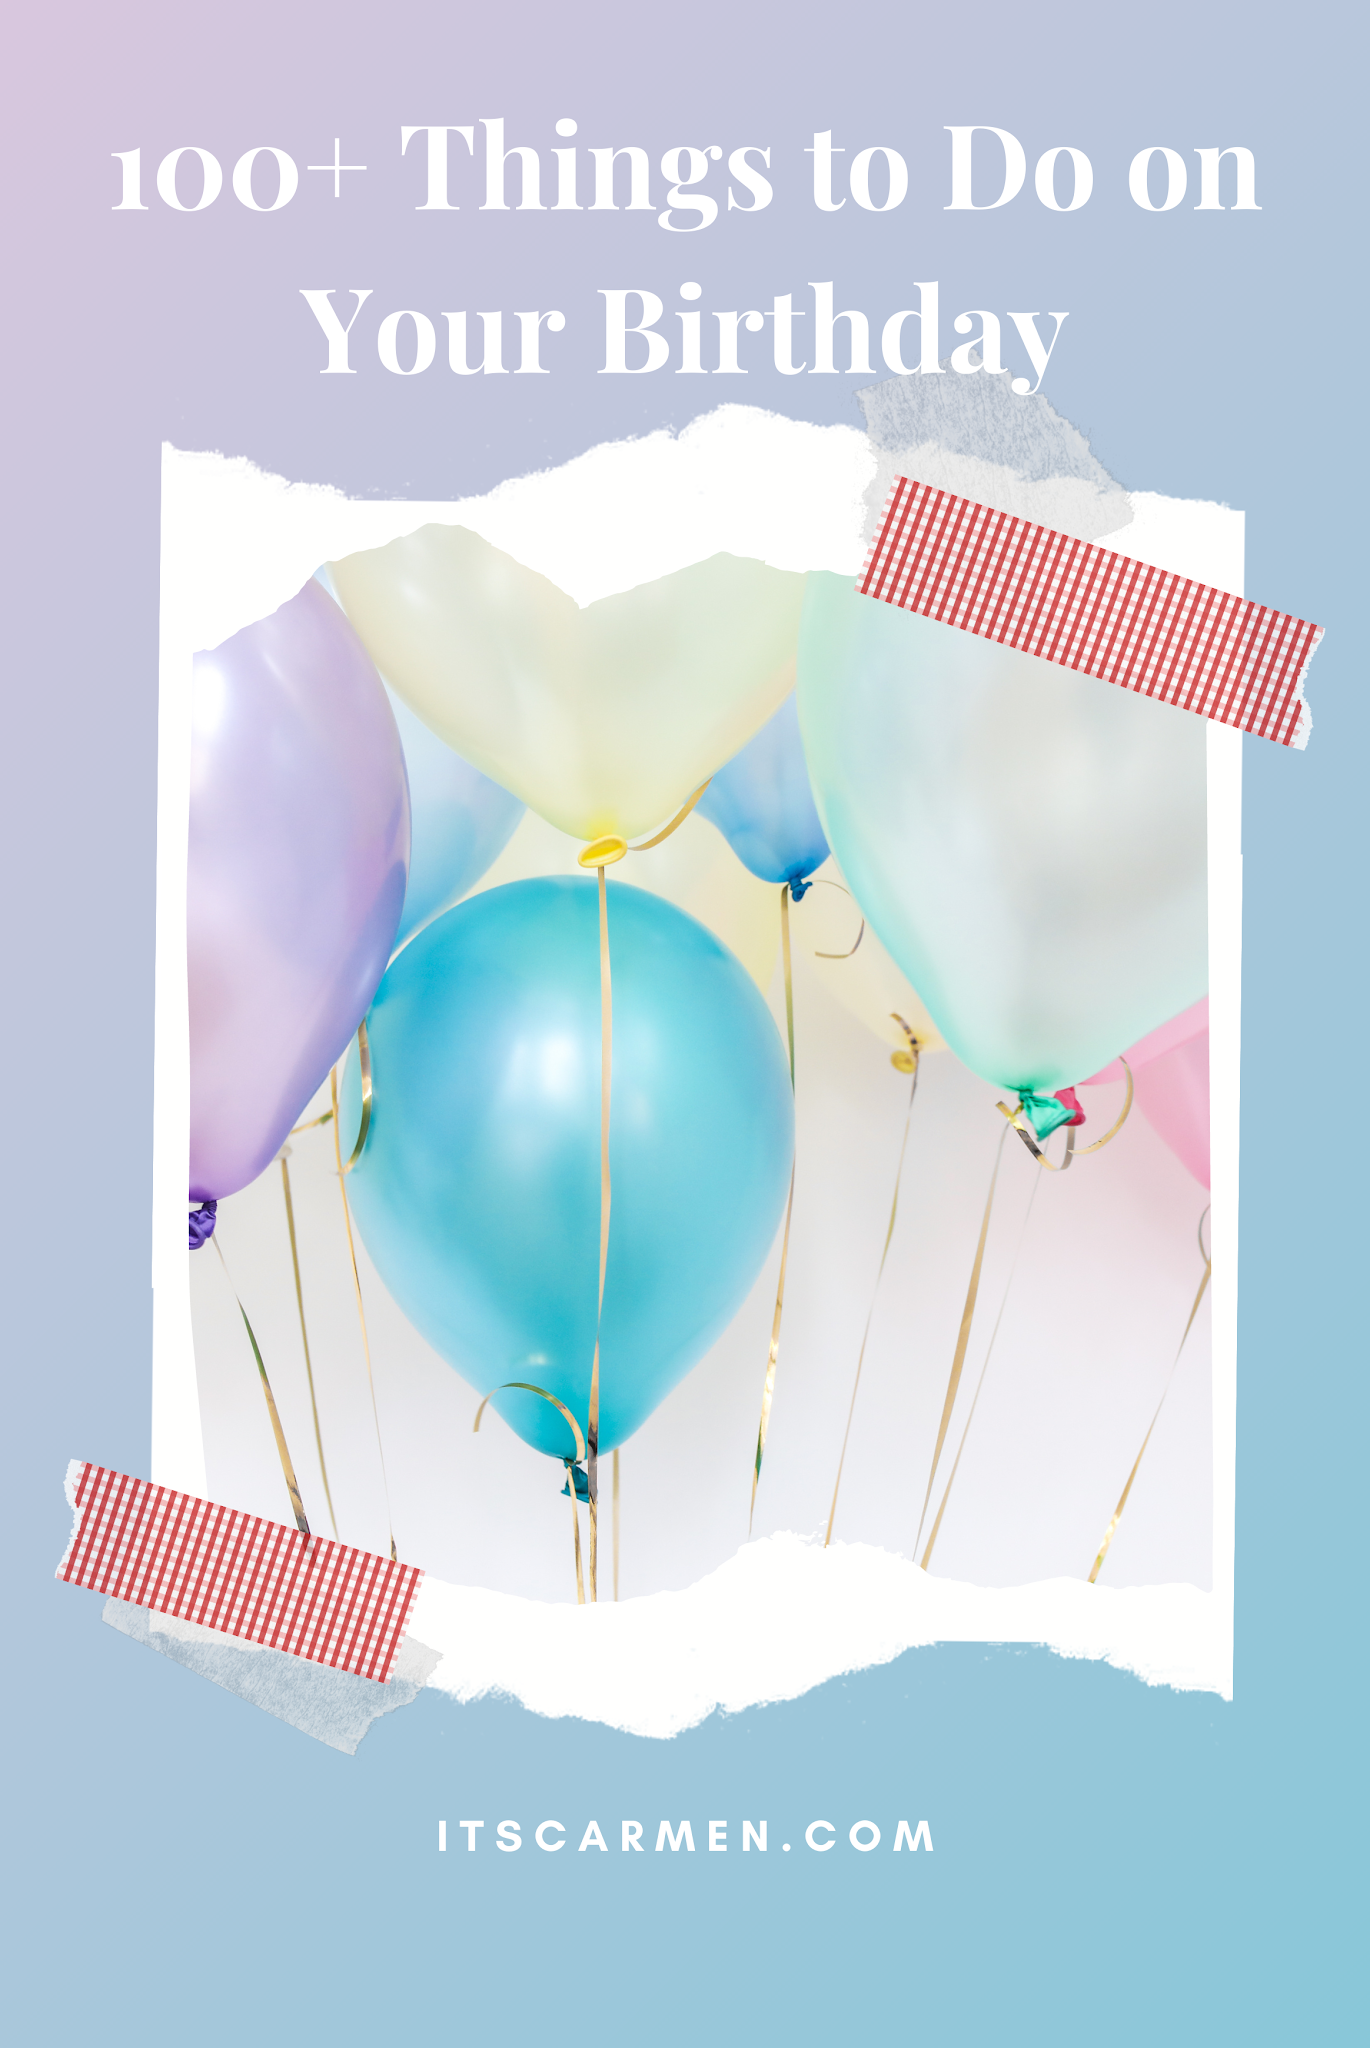 100 Things To Do On Your Birthday Carmen Varner Social Media Manager By Day Lifestyle Travel Writer Whenever Else